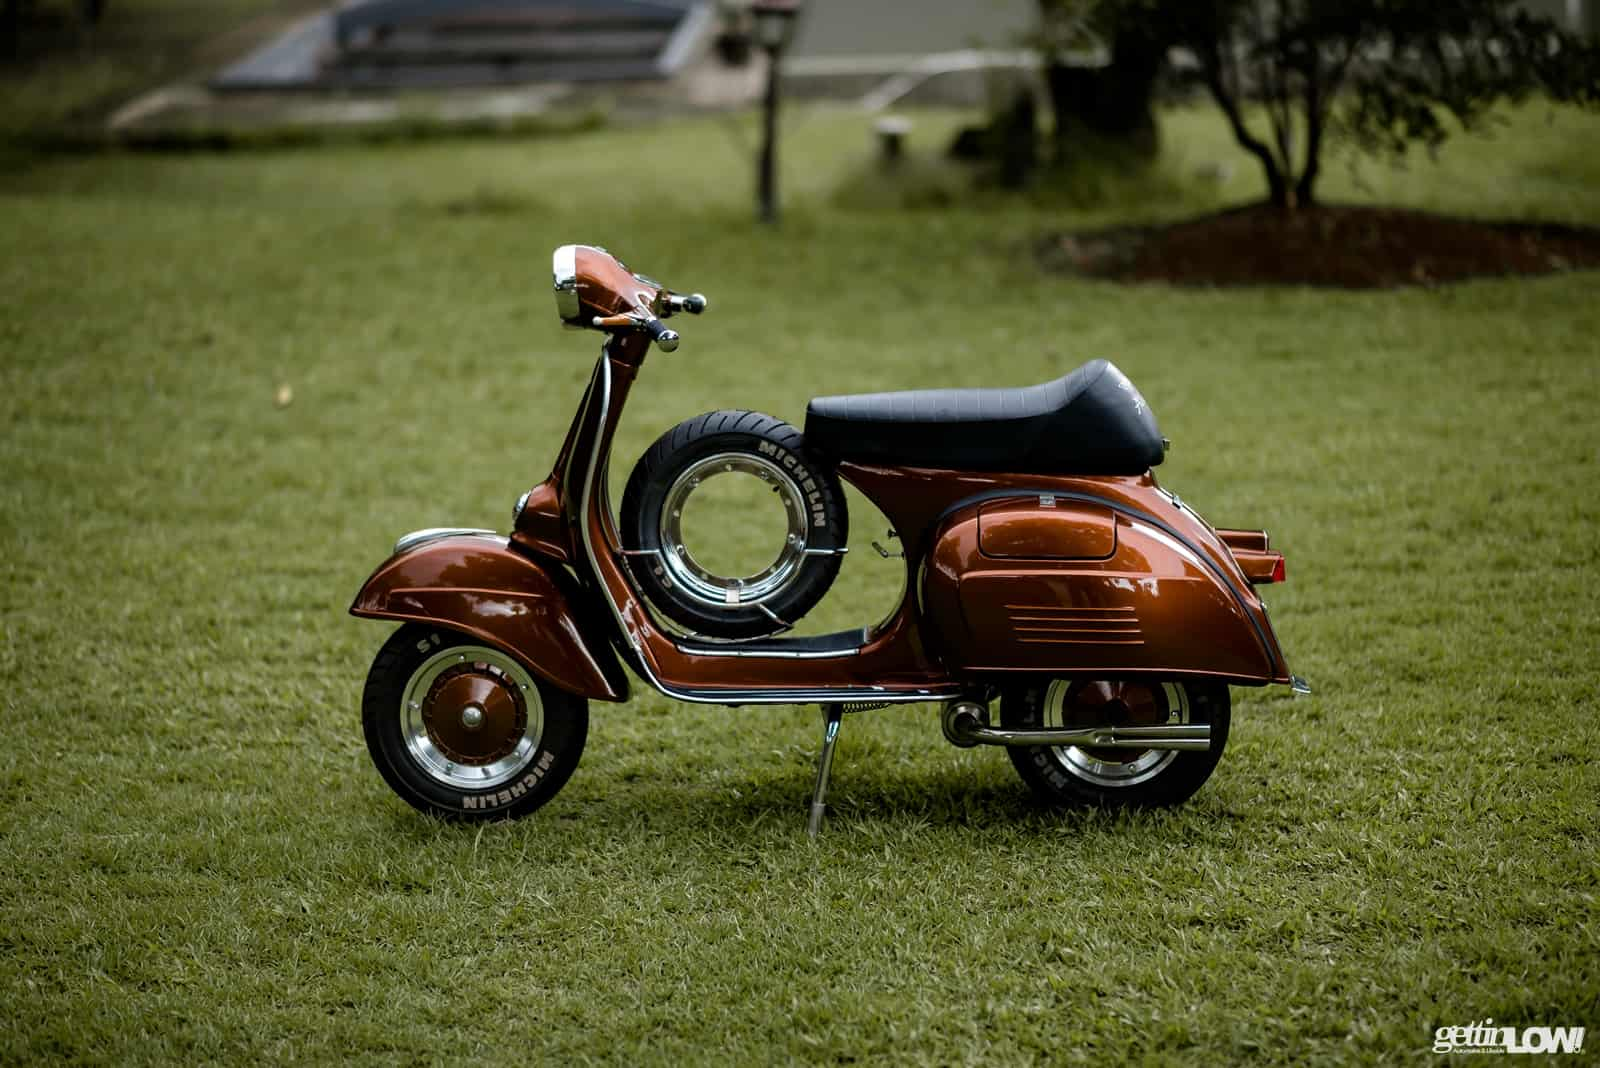 https://www.gettinlow.com/wp-content/uploads/2018/01/bimantoro-wiyono_VESPA-VELOCE-1977_05.jpg